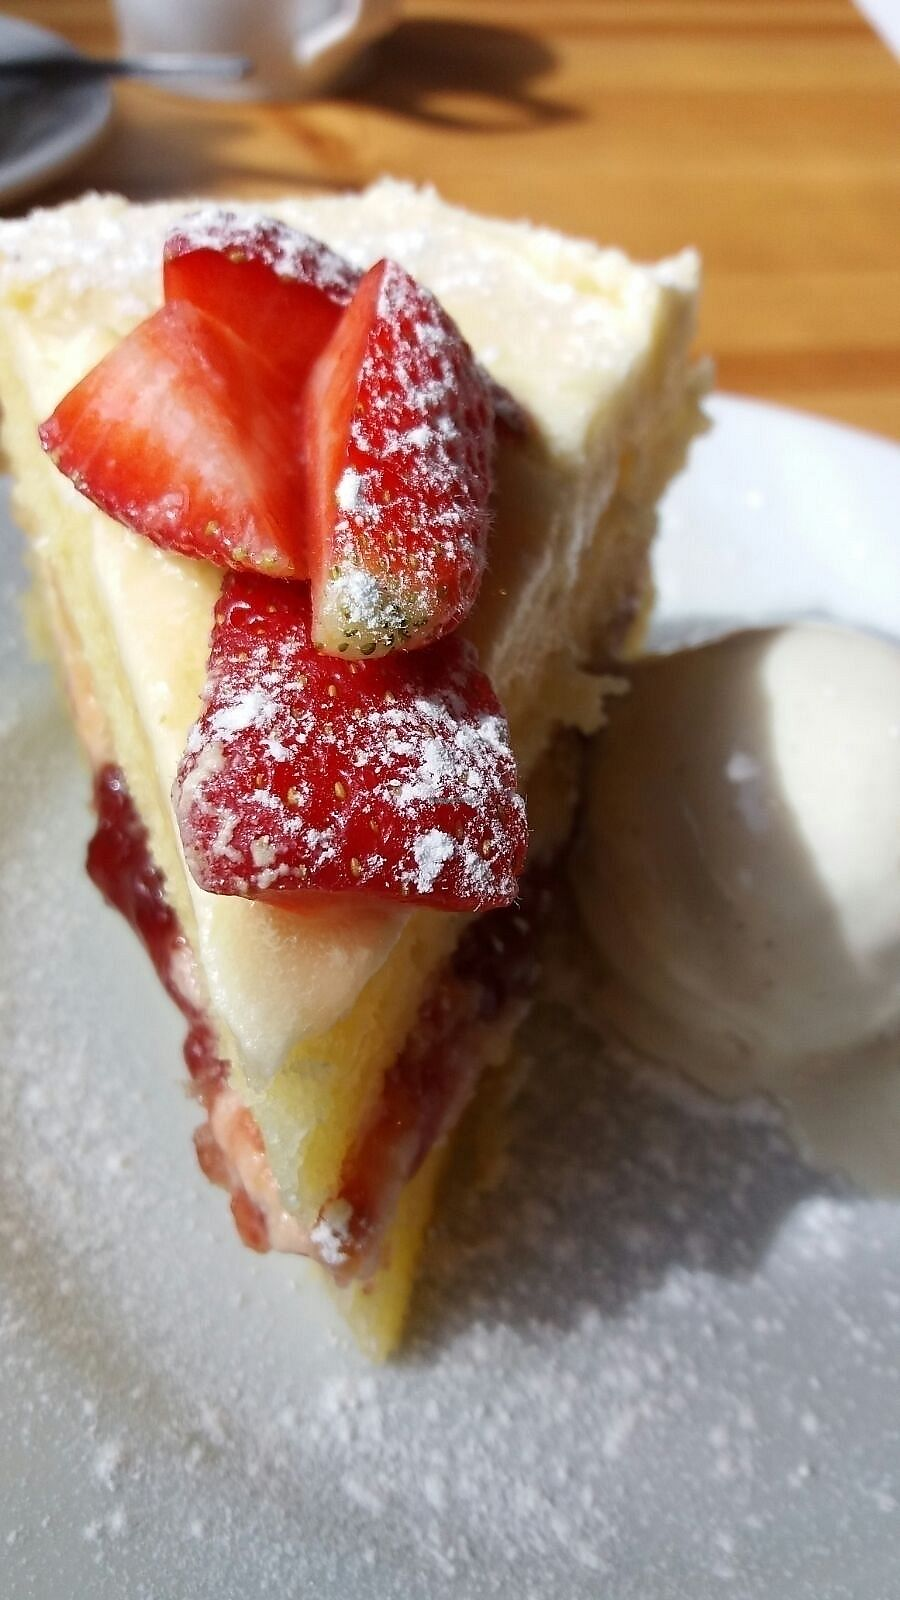 """Photo of The Willow Tree Cafe  by <a href=""""/members/profile/sgacton"""">sgacton</a> <br/>vegan victoria sponge with vanilla ice cream  <br/> August 20, 2017  - <a href='/contact/abuse/image/97937/294661'>Report</a>"""